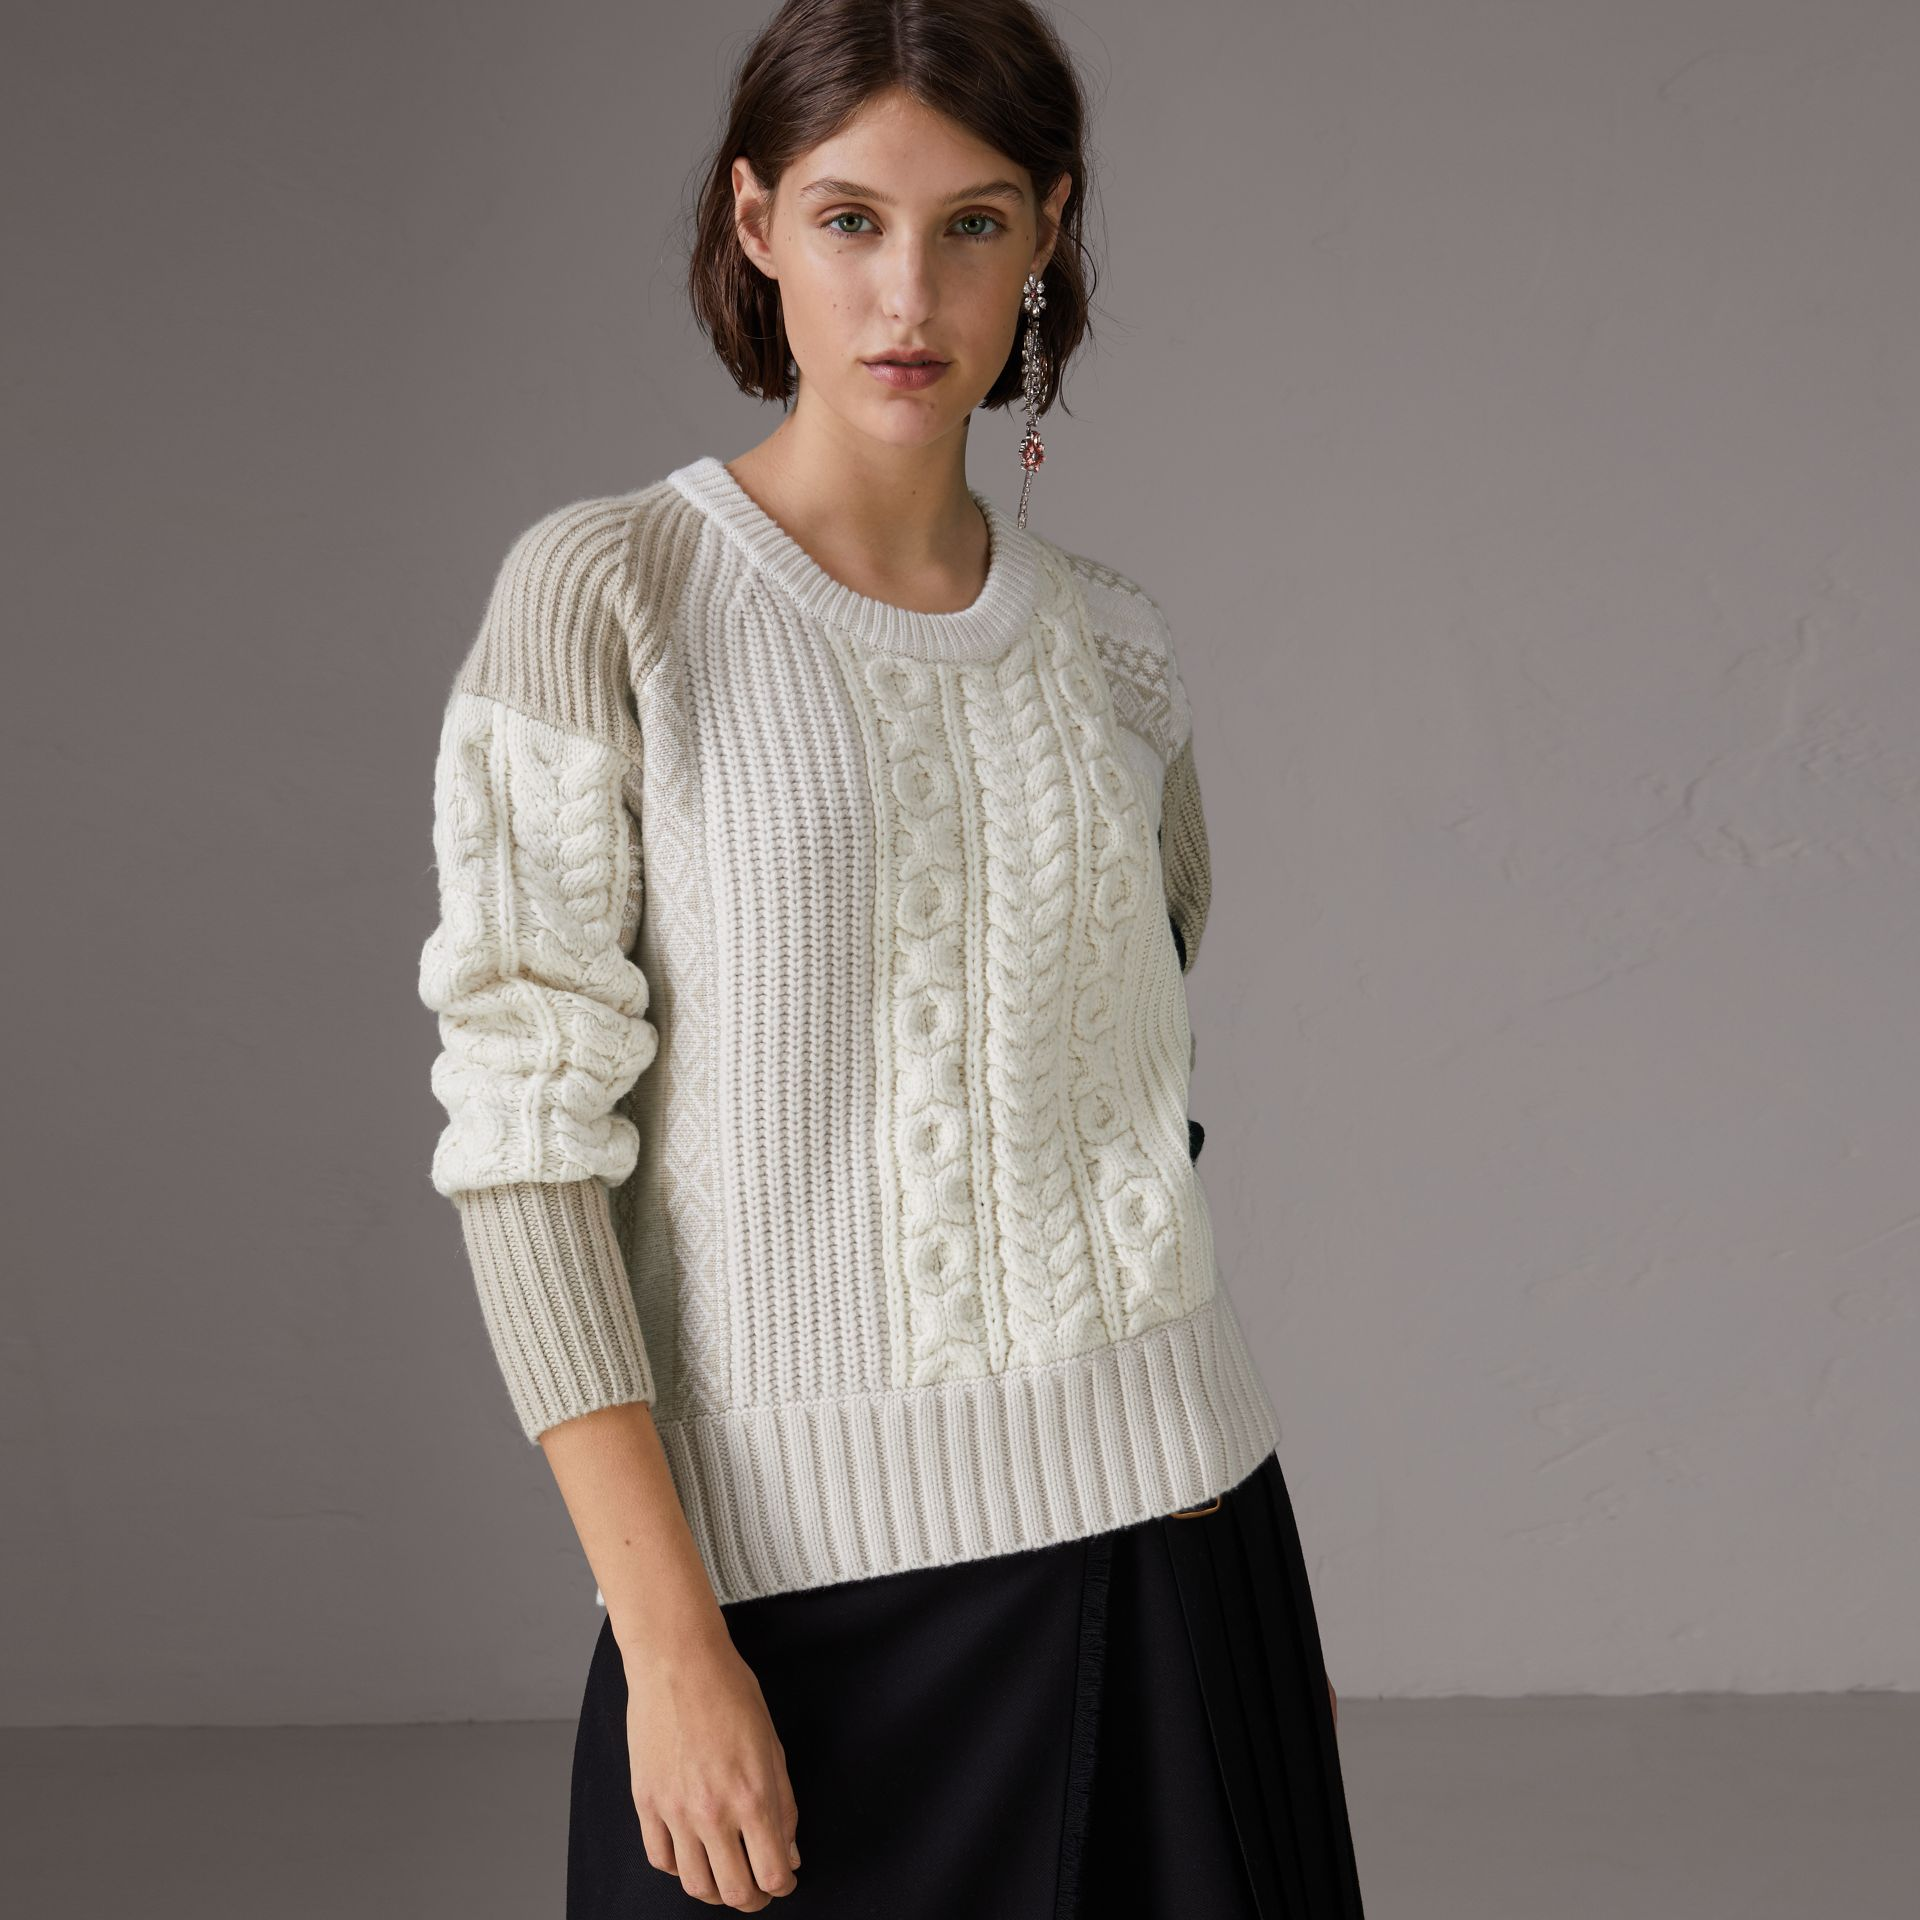 Colour Block Fair Isle and Cable Knit Wool Cashmere Sweater in Ivory - Women | Burberry Australia - gallery image 0